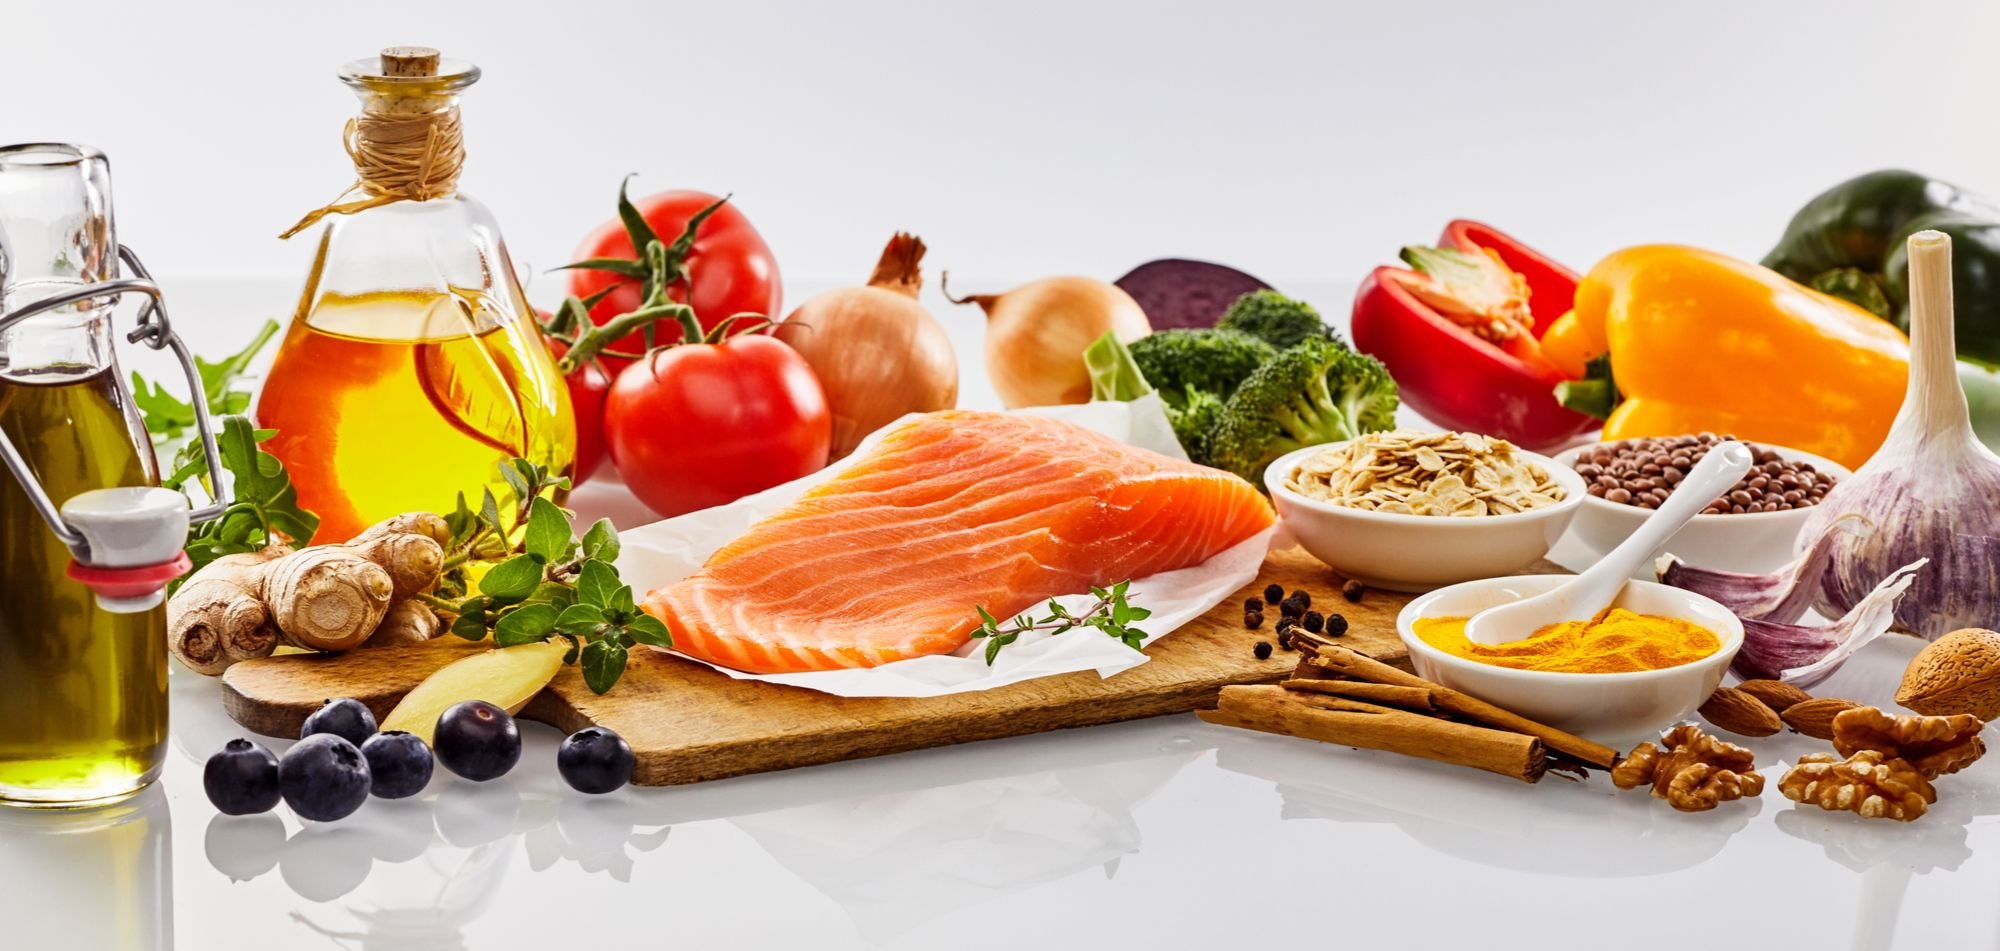 Salmon, vegetables, and other healthy foods